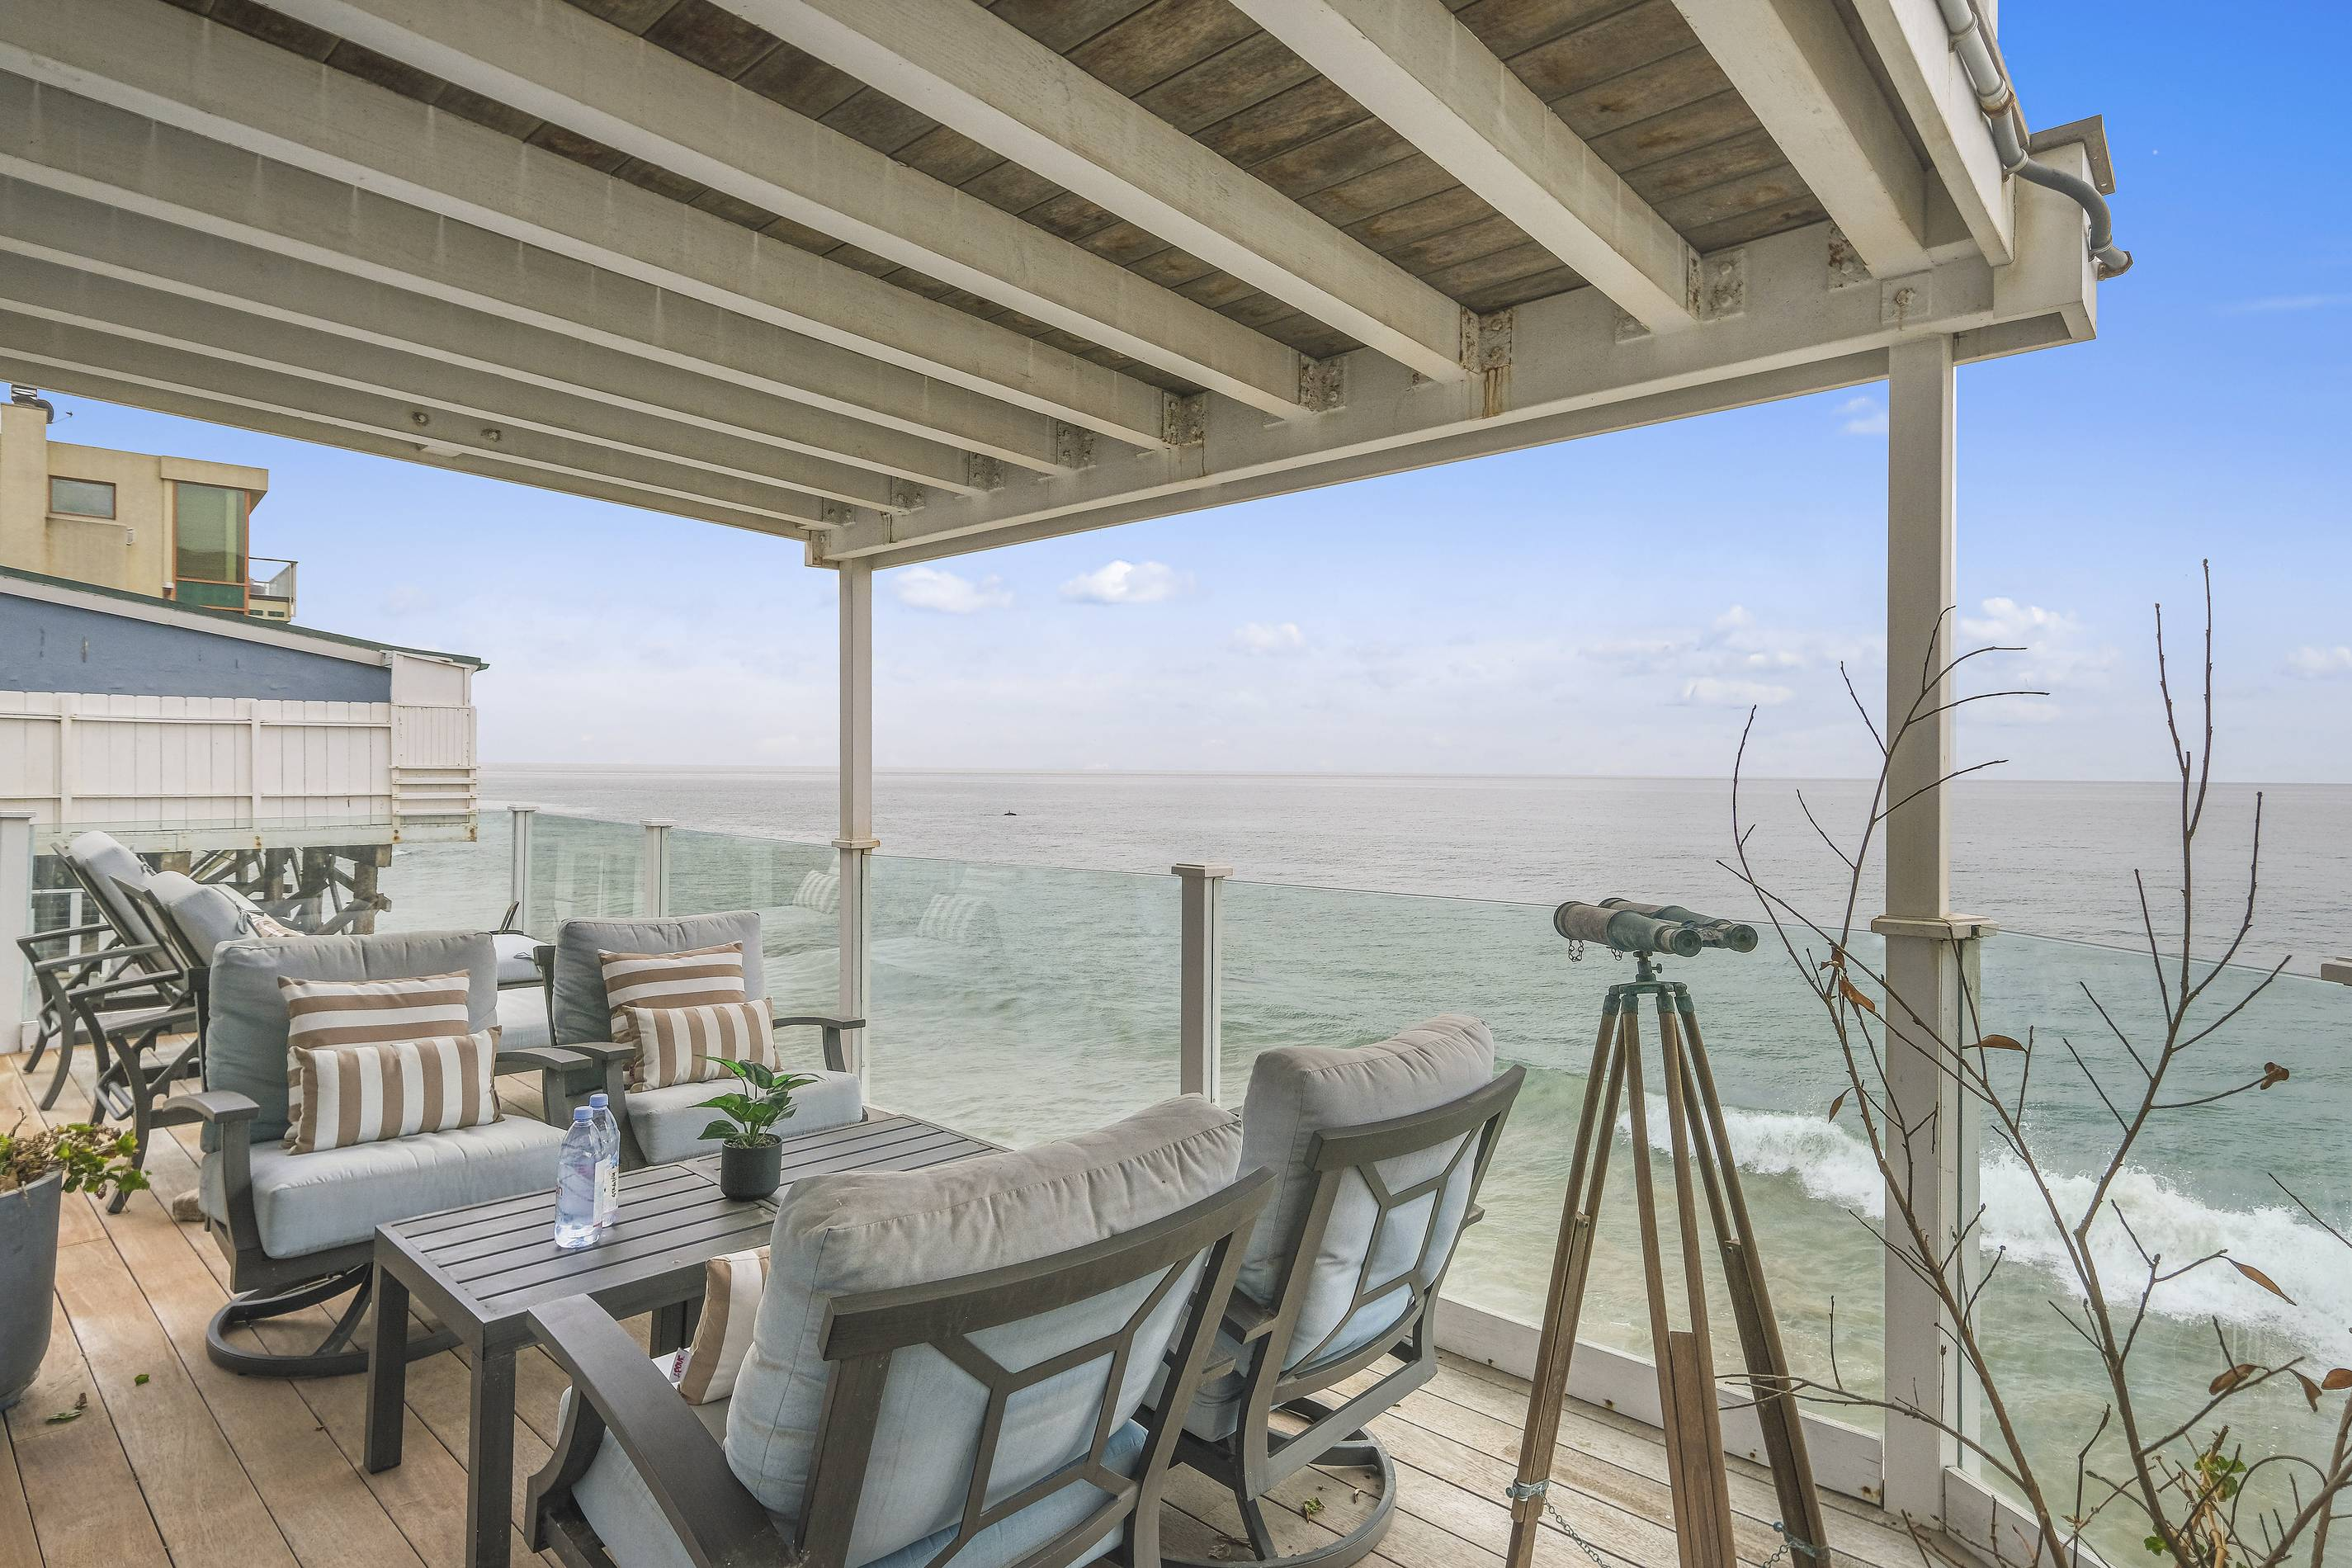 Judy Garland's Malibu Home for Sale